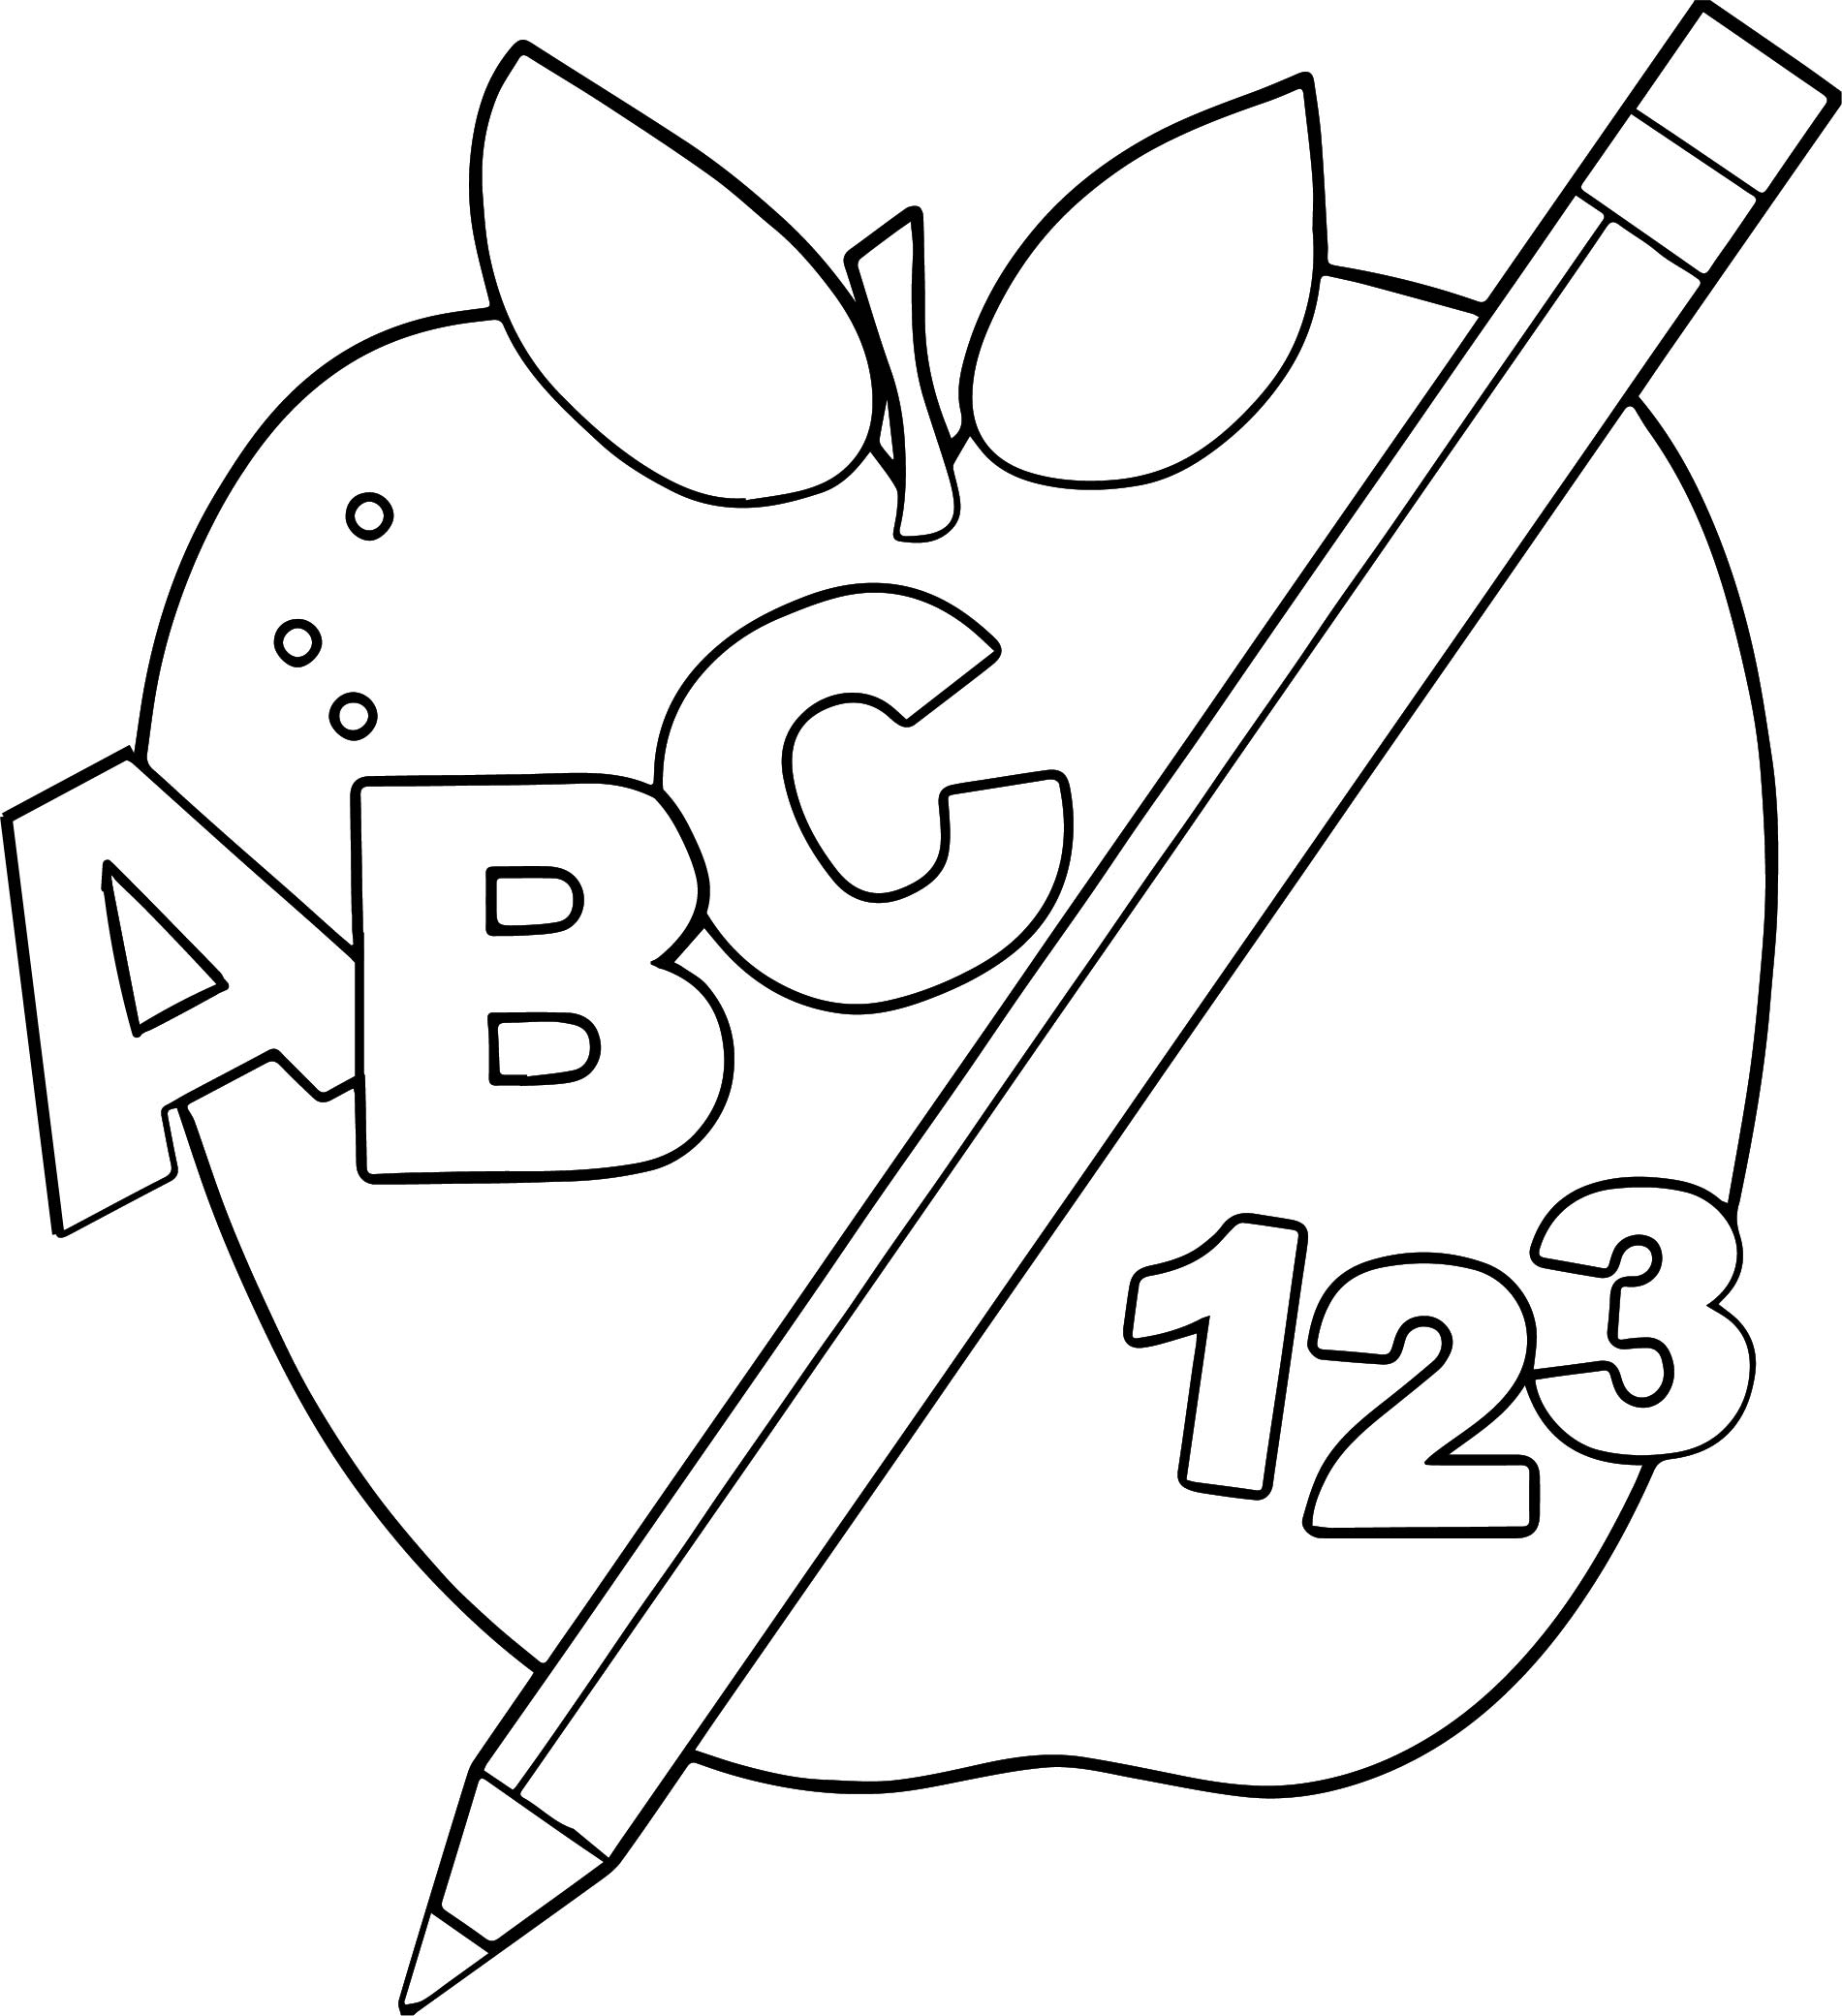 Abc Border Free Apple Image Coloring Page